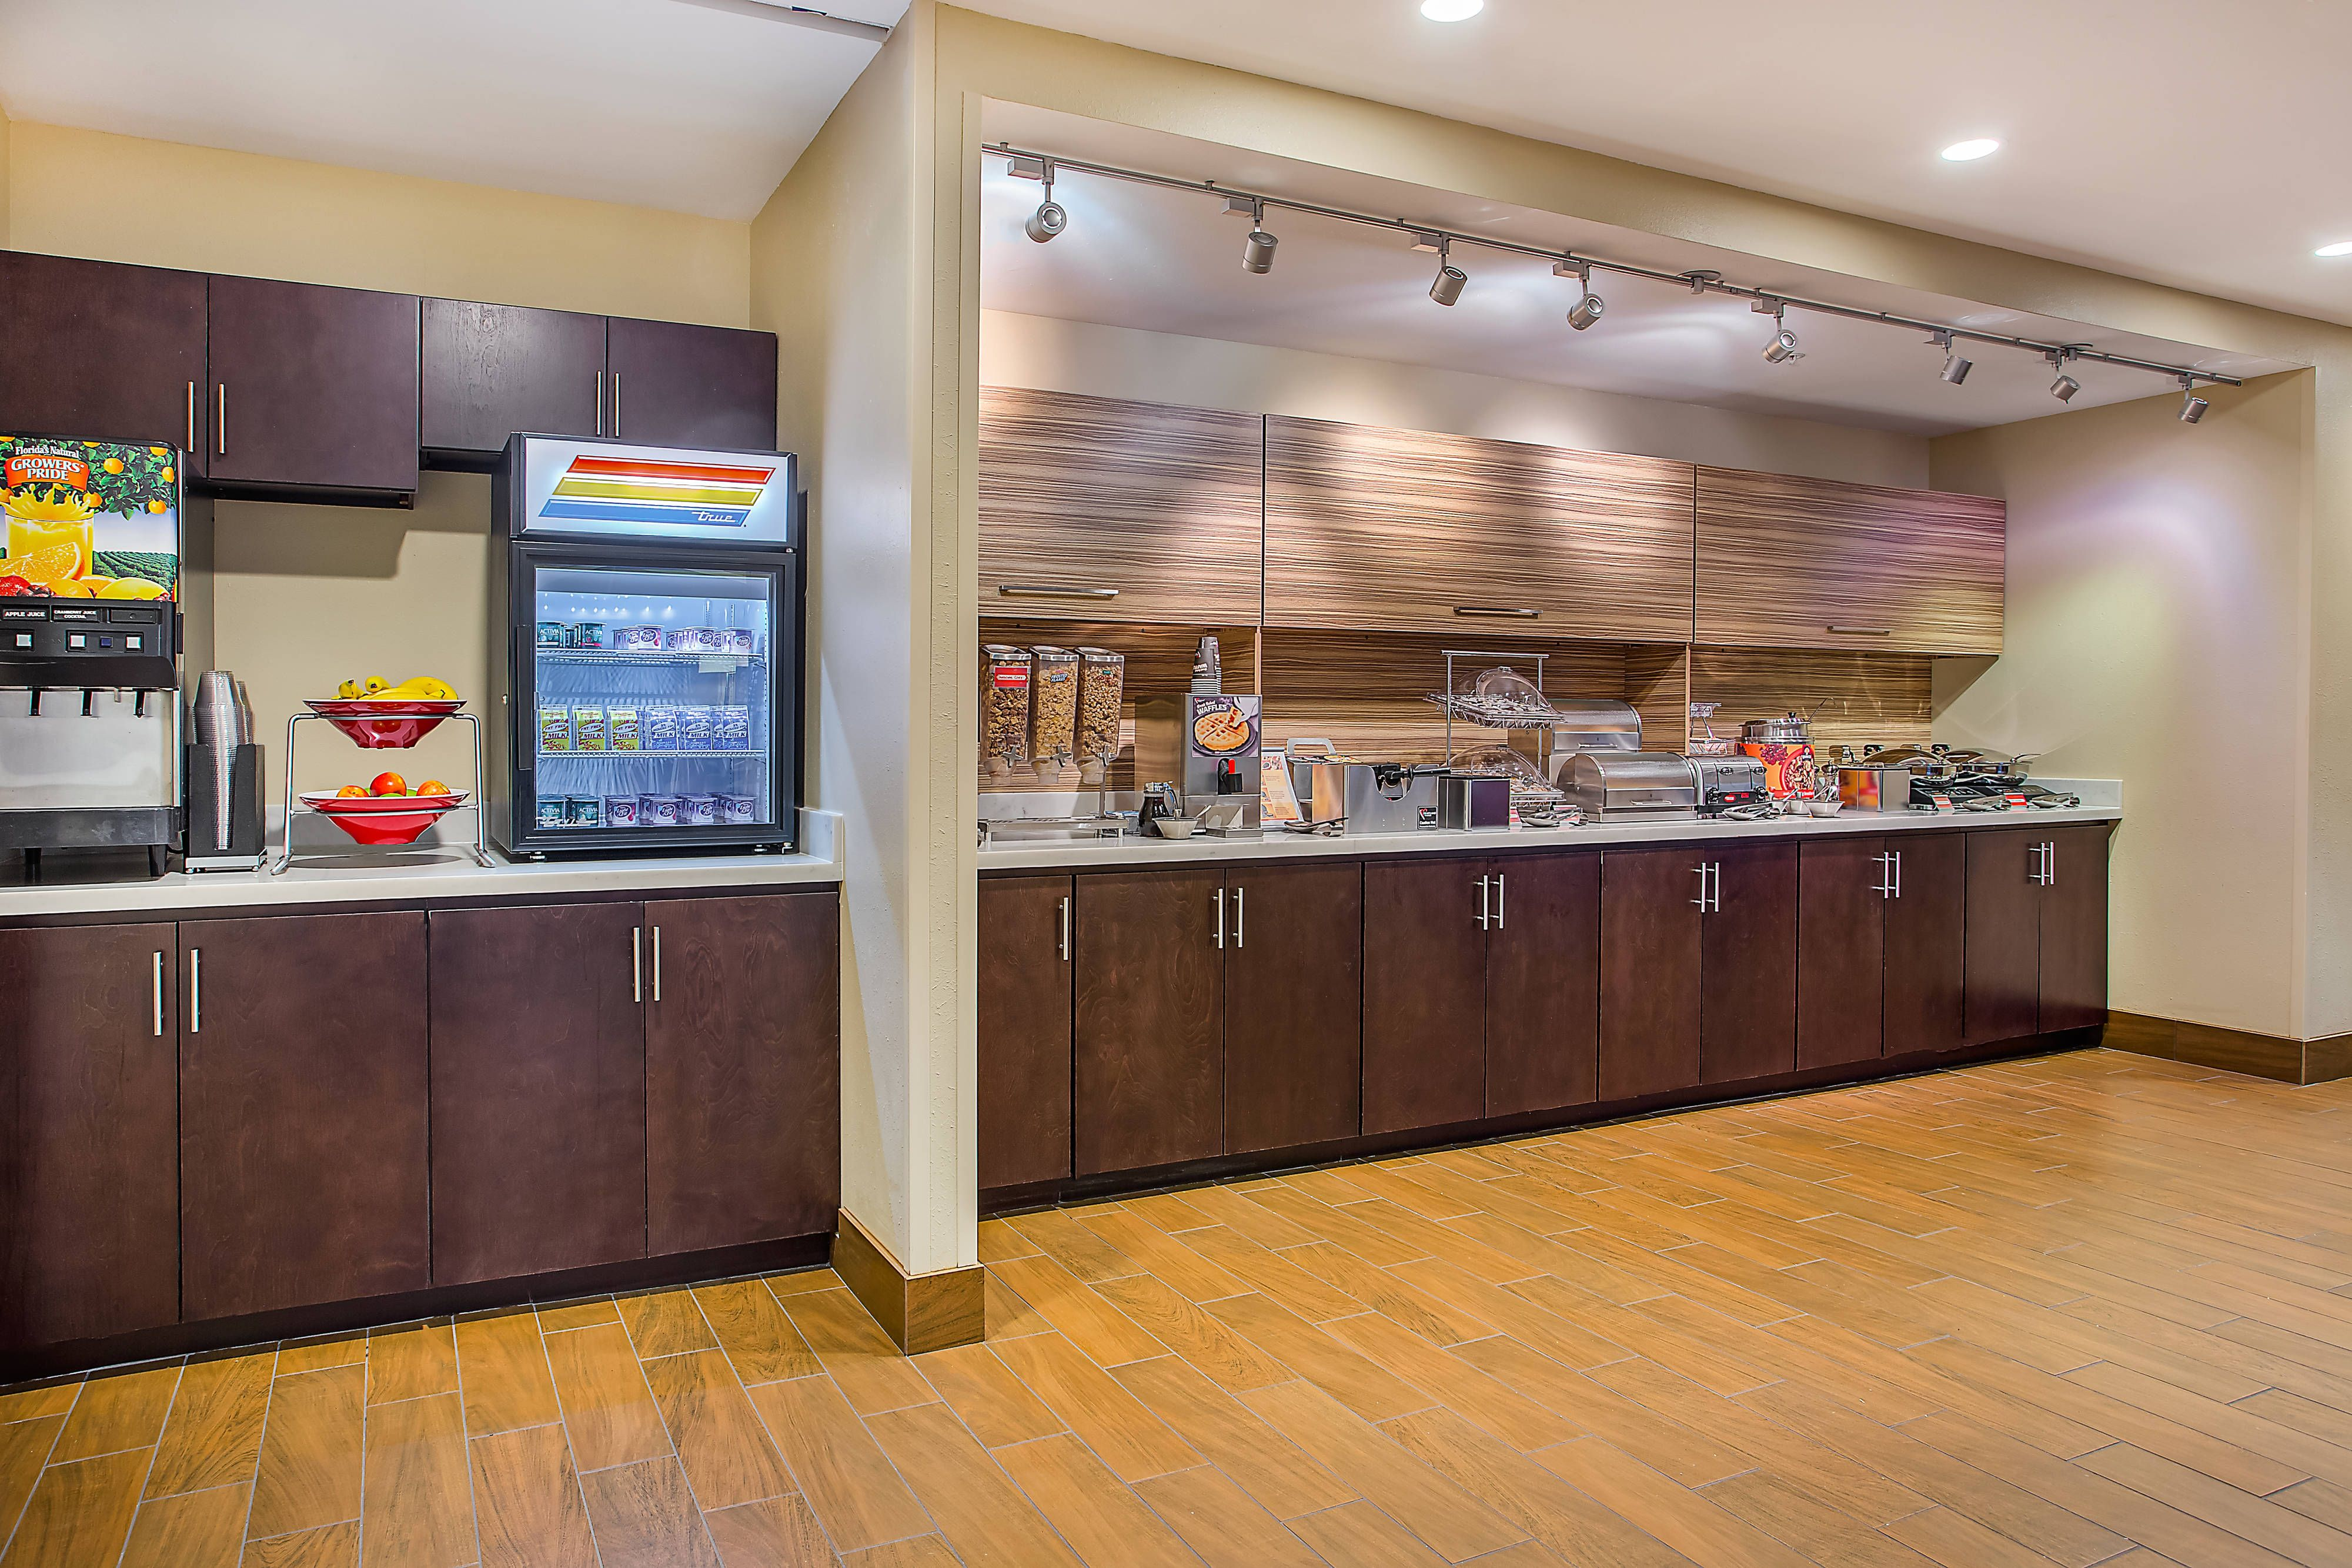 Towneplace Suites Cookeville Breakfast Buffet Beautiful Travel